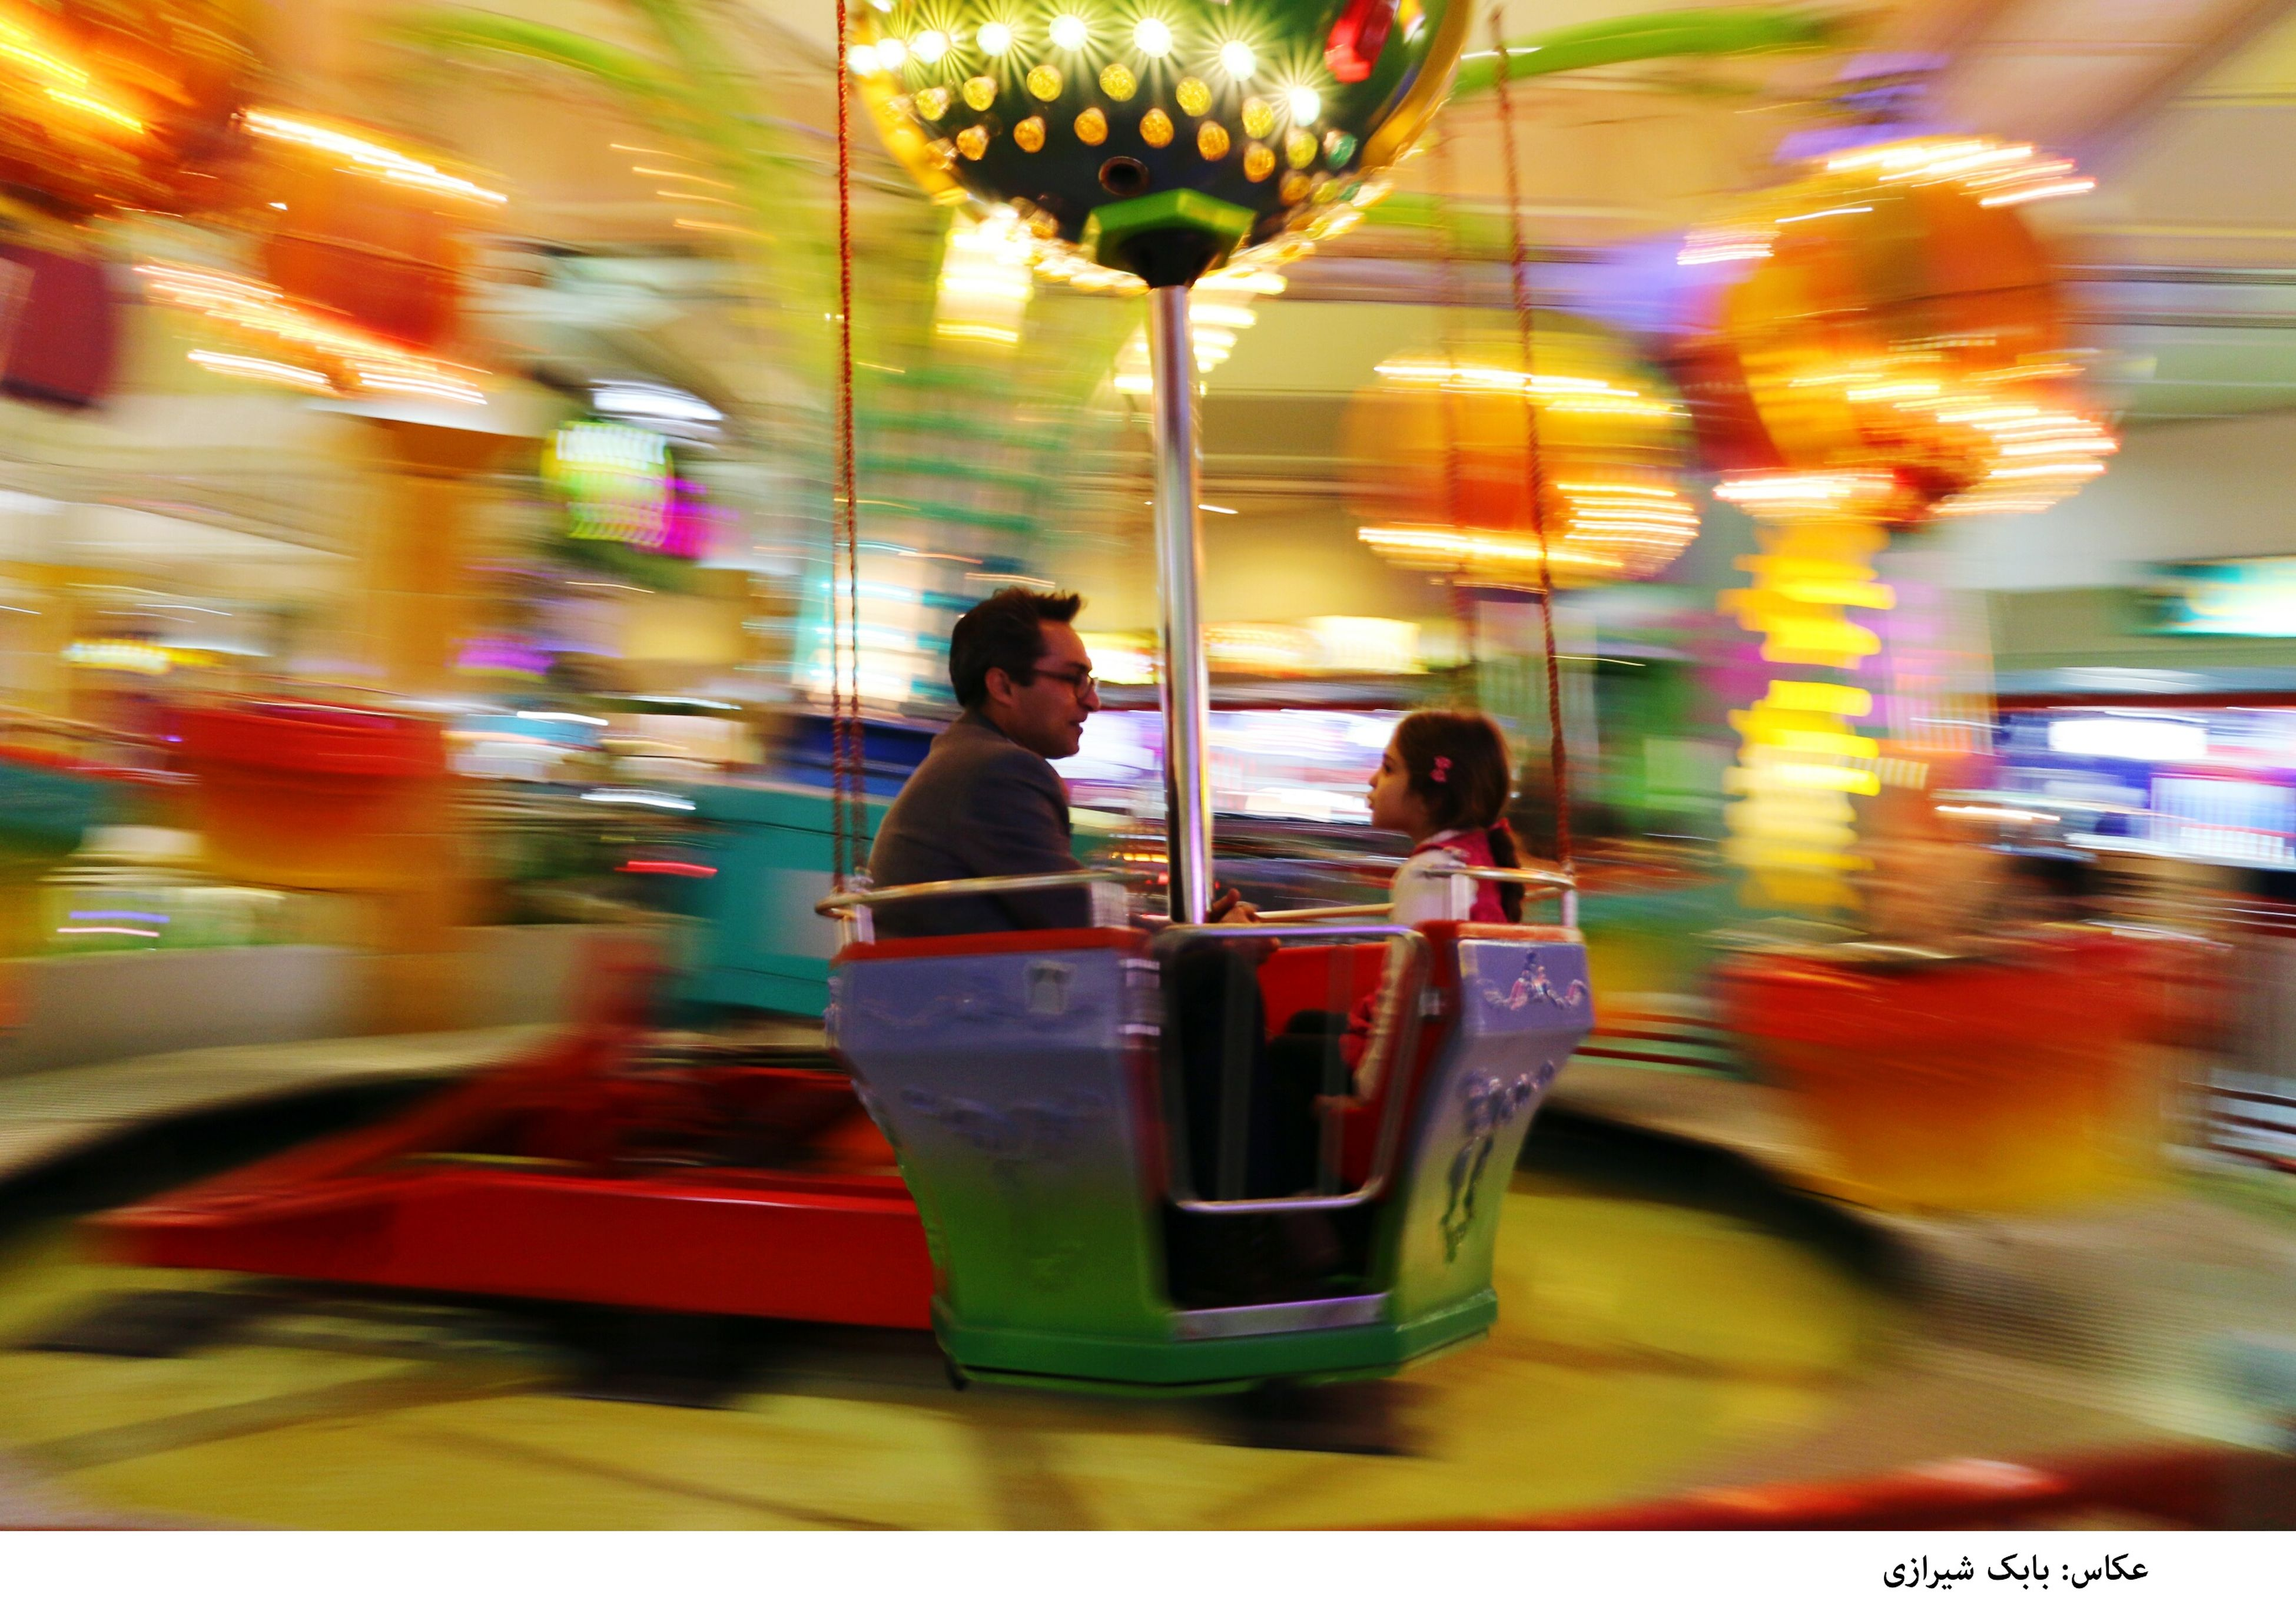 reflection, blurred motion, illuminated, real people, motion, men, night, speed, public transportation, outdoors, adults only, only men, adult, young adult, people